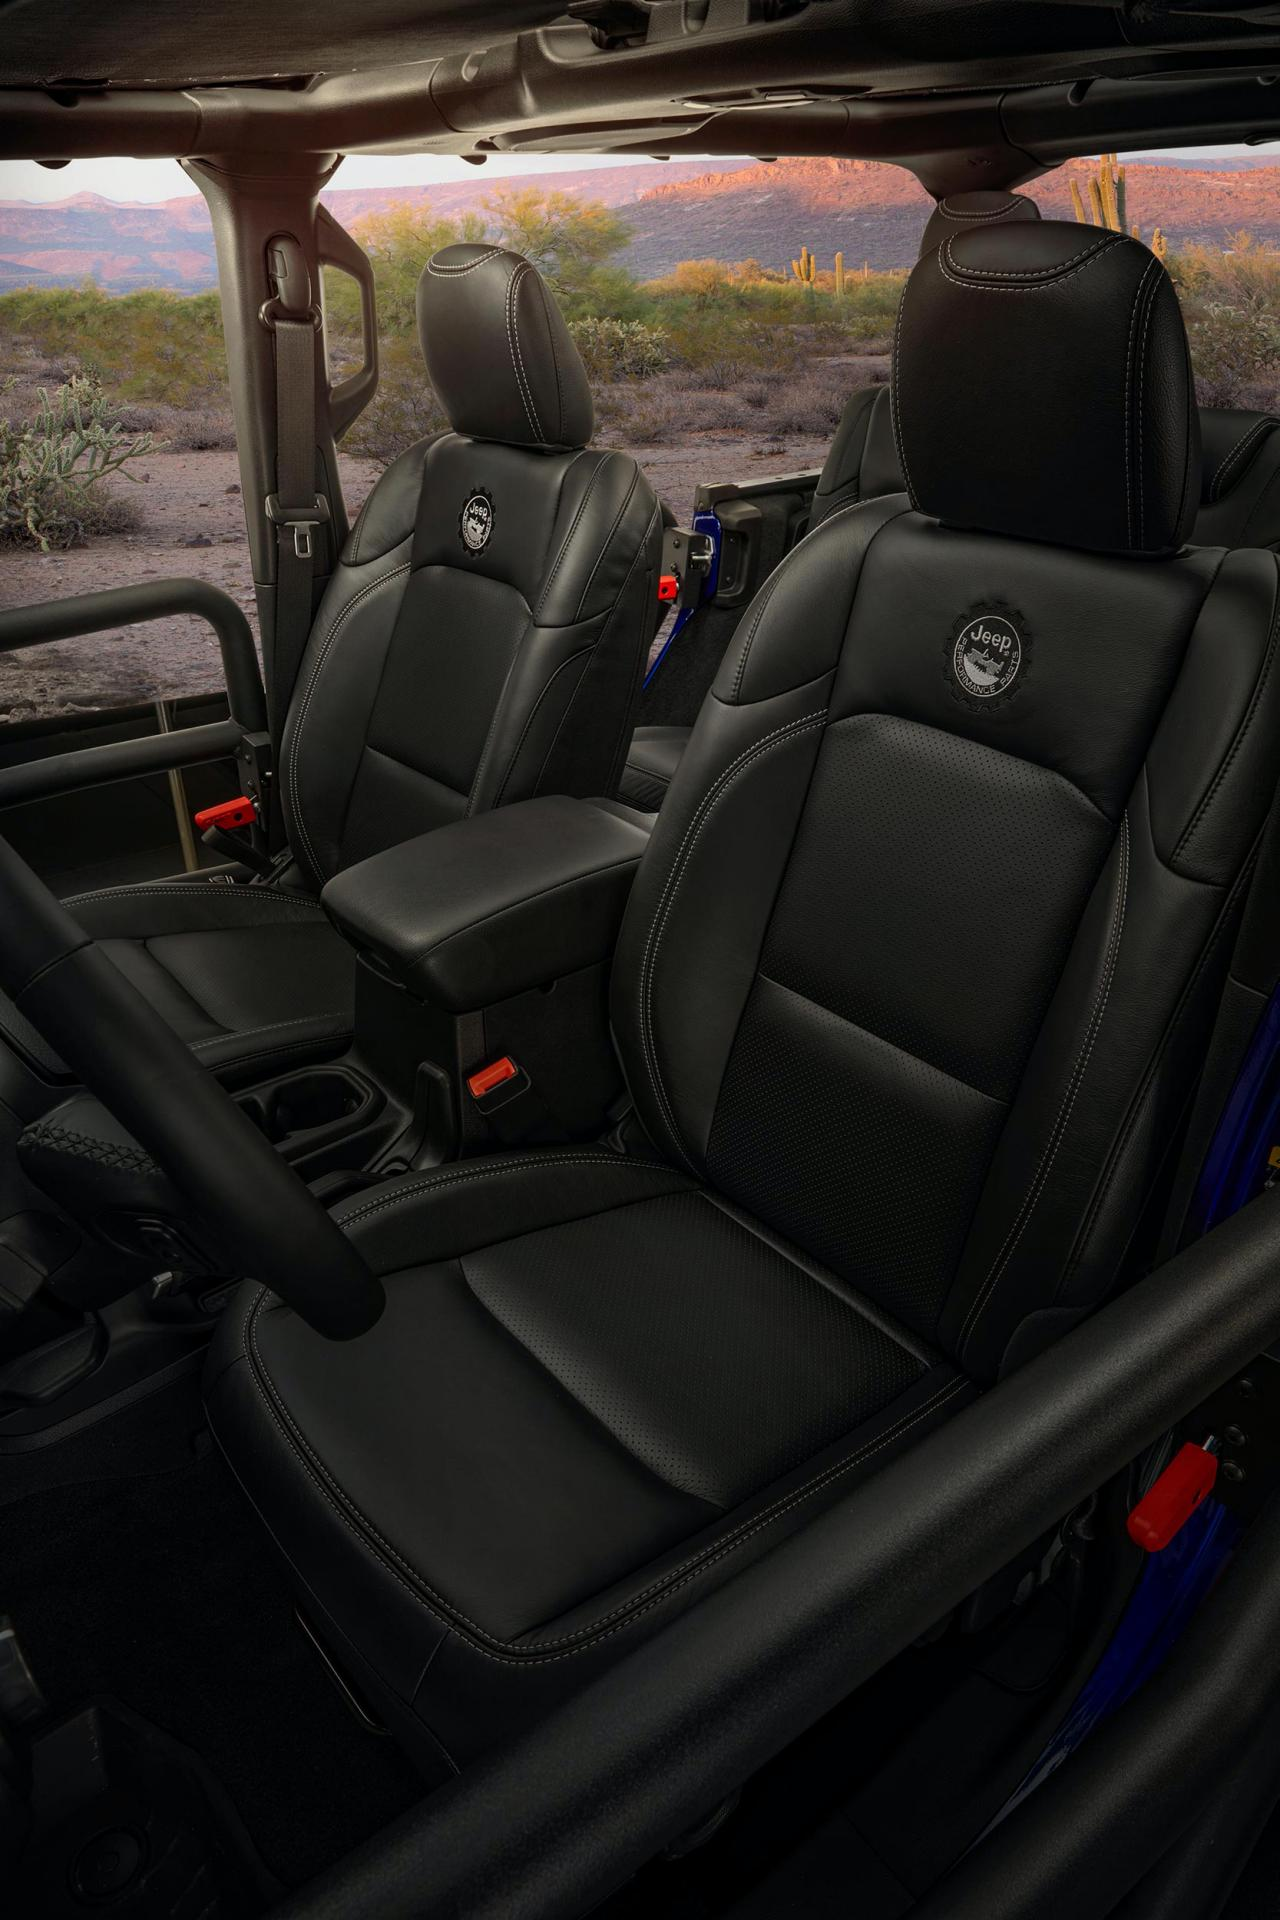 Jeep-Wrangler-JPP-20-Limited-Edition-12